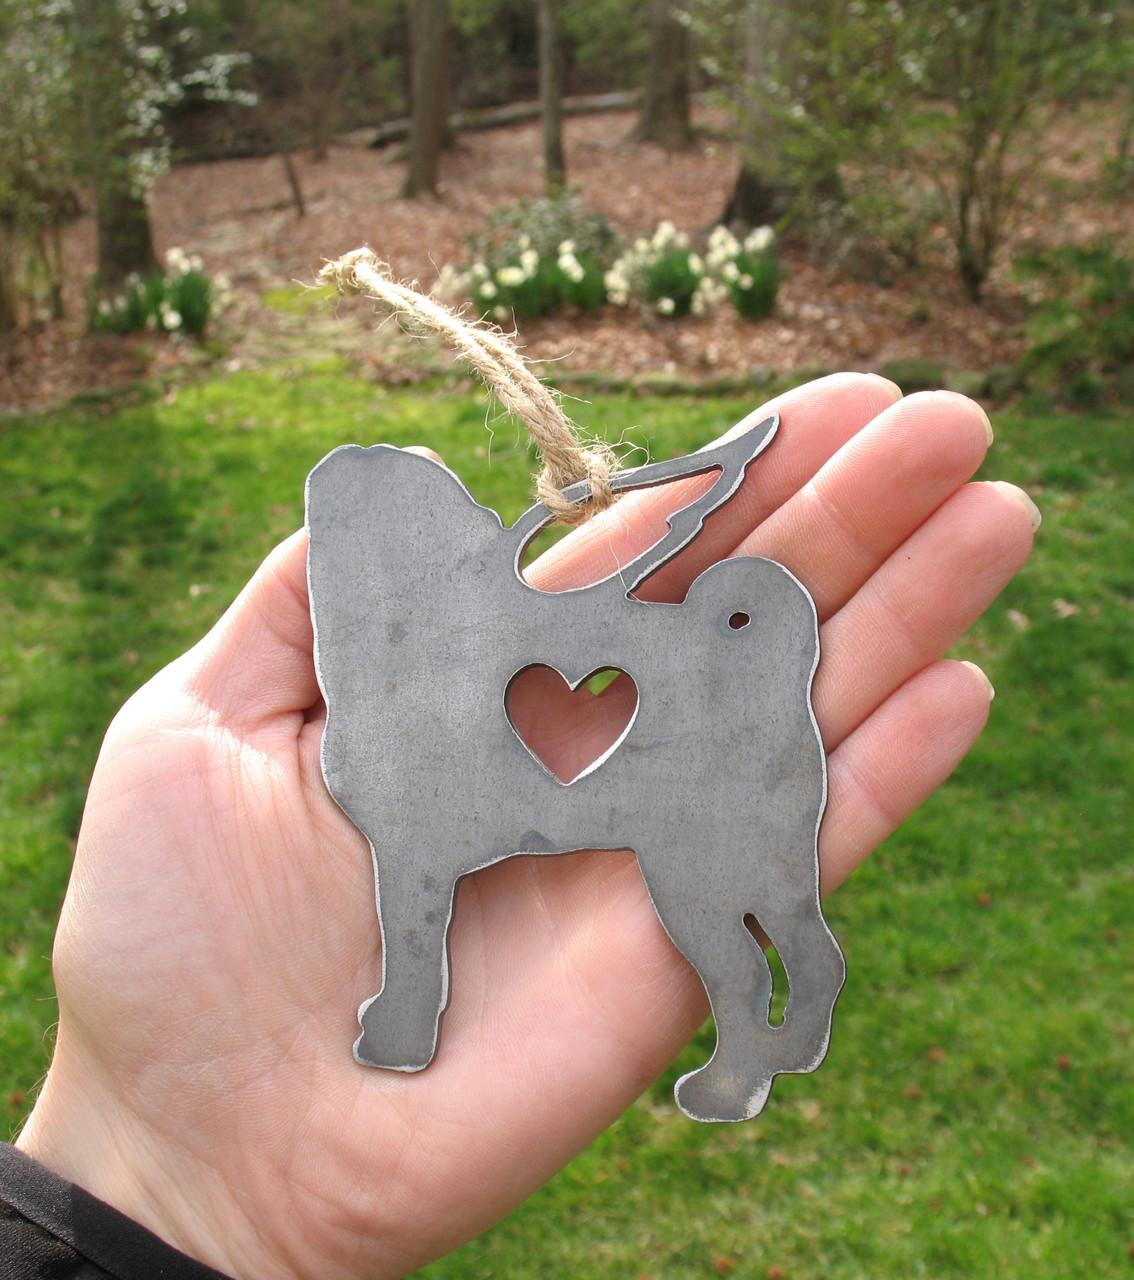 Pug Dog Ornament 1 Pet Memorial W/ Angel Wings - Pet Loss Dog Sympathy Remembrance Gift - Metal Dog Christmas Ornament